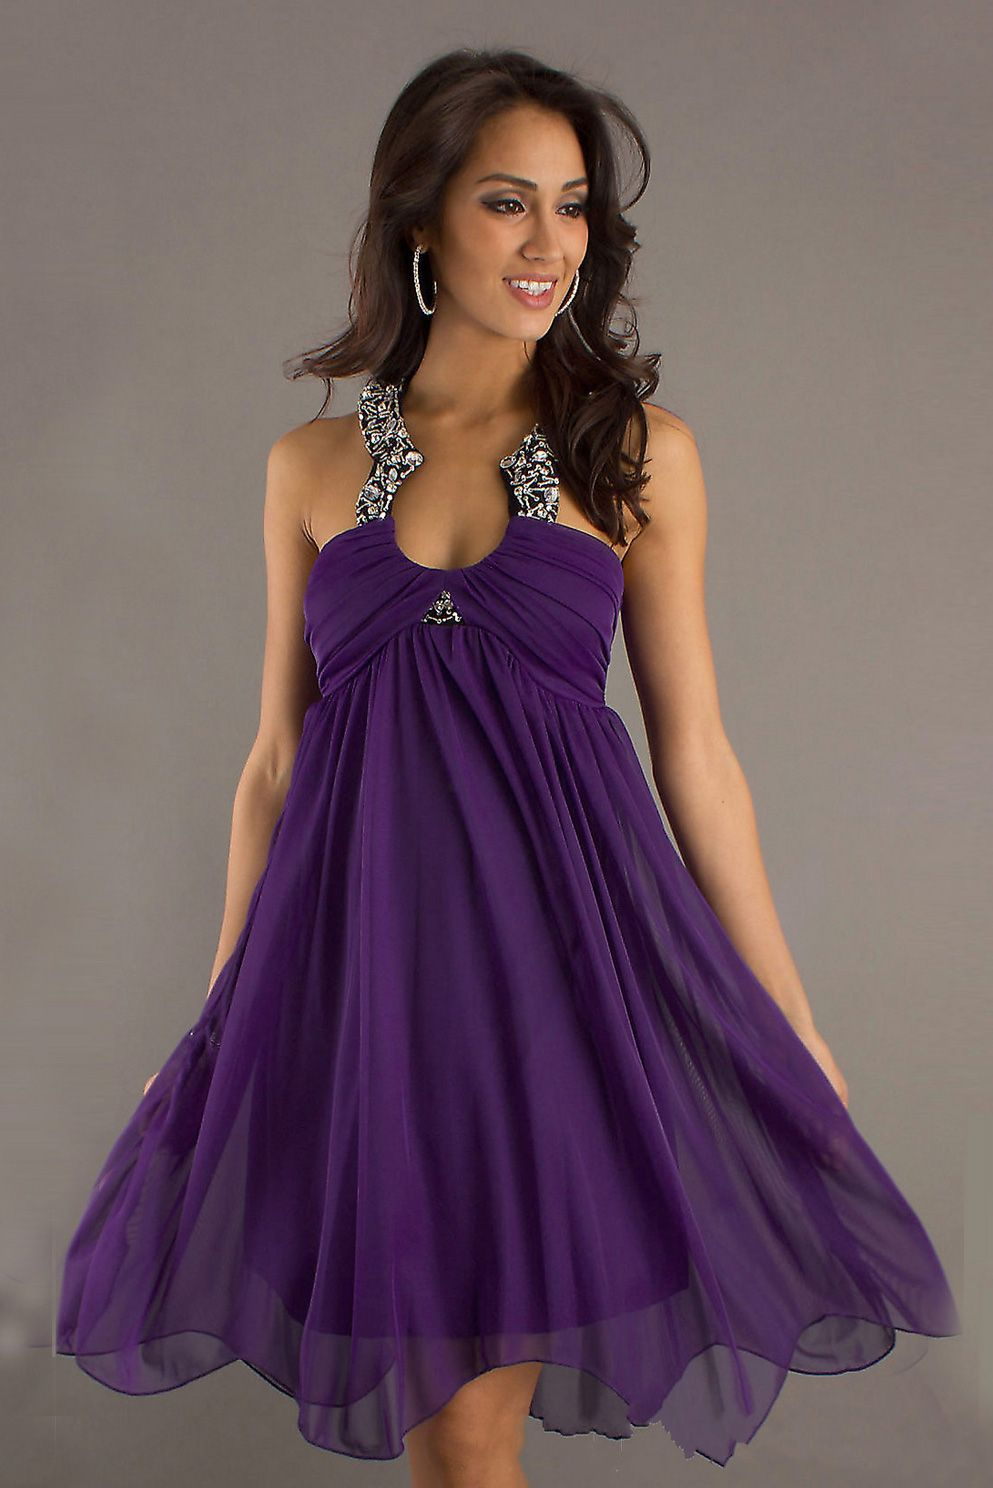 love the color | Dress | Pinterest | Vestiditos, Vestidos de fiesta ...